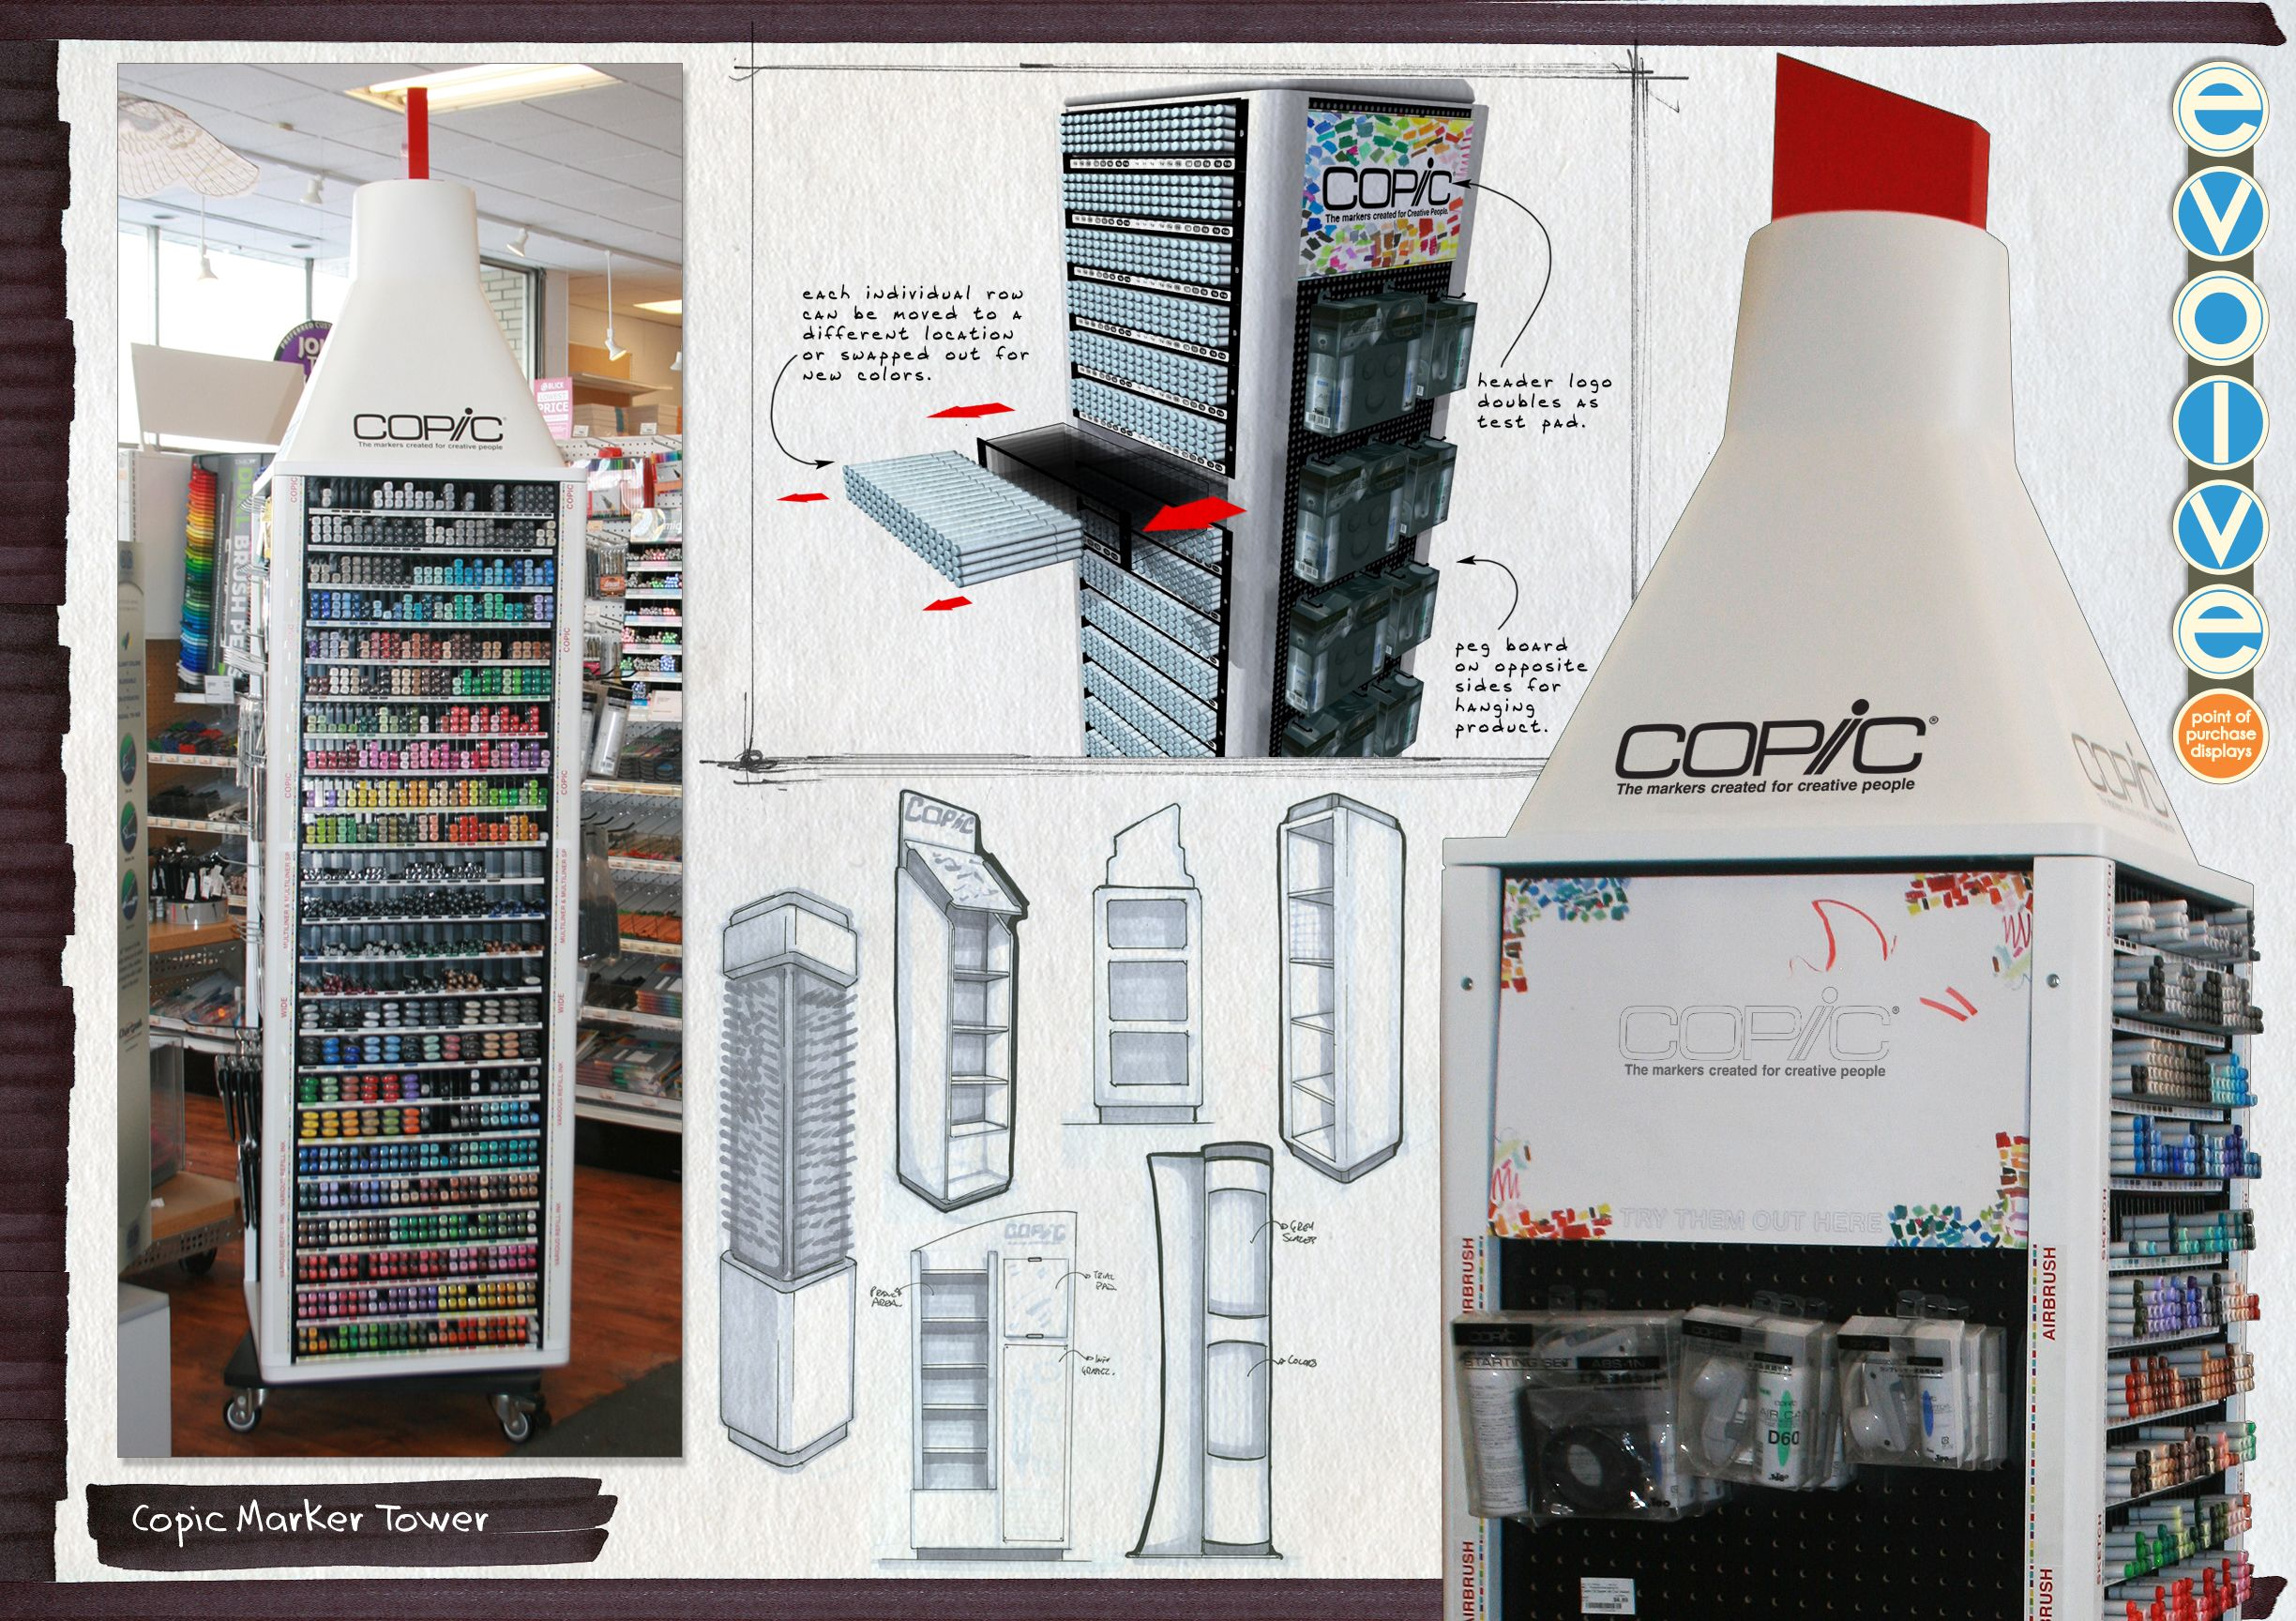 This is a display we designed for Copic Markers! You can find them in Dick  Blick art supply stores and other major art supply retailers.